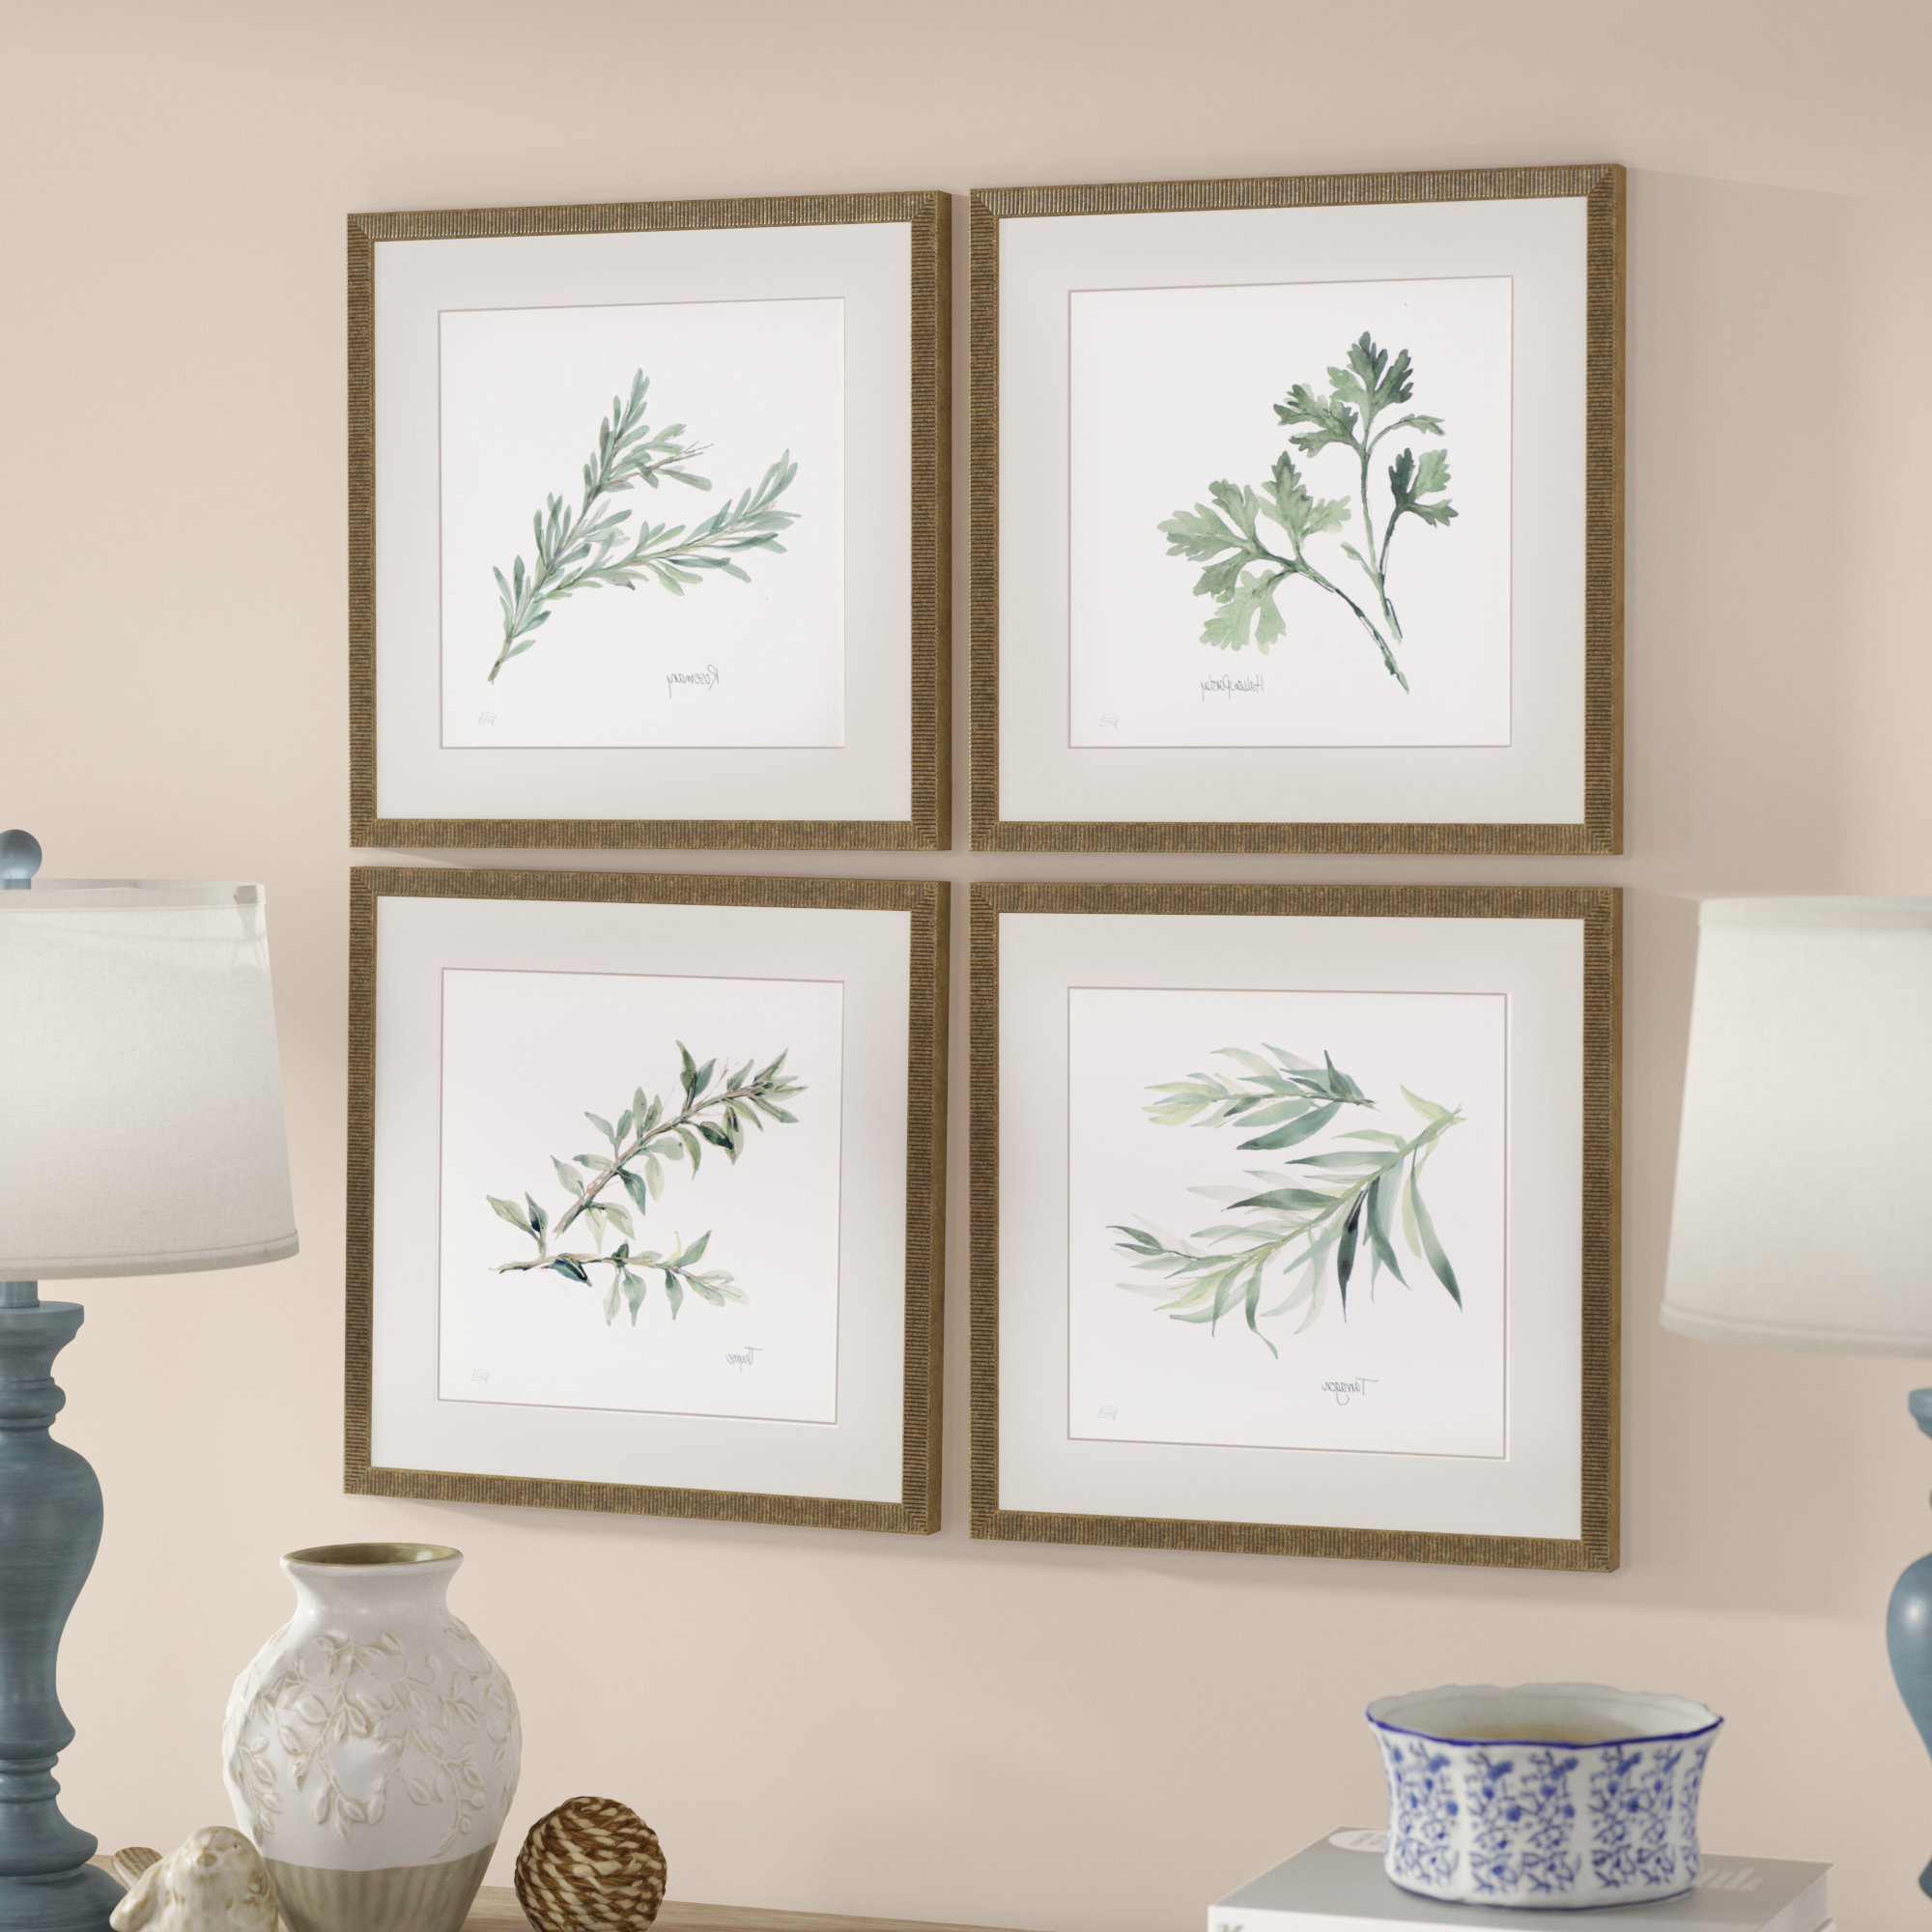 3 Piece Ceramic Flowers Wall Decor Sets In Most Up To Date Lark Manor 'herbs' 4 Piece Framed Graphic Art Print Set & Reviews (Gallery 12 of 20)